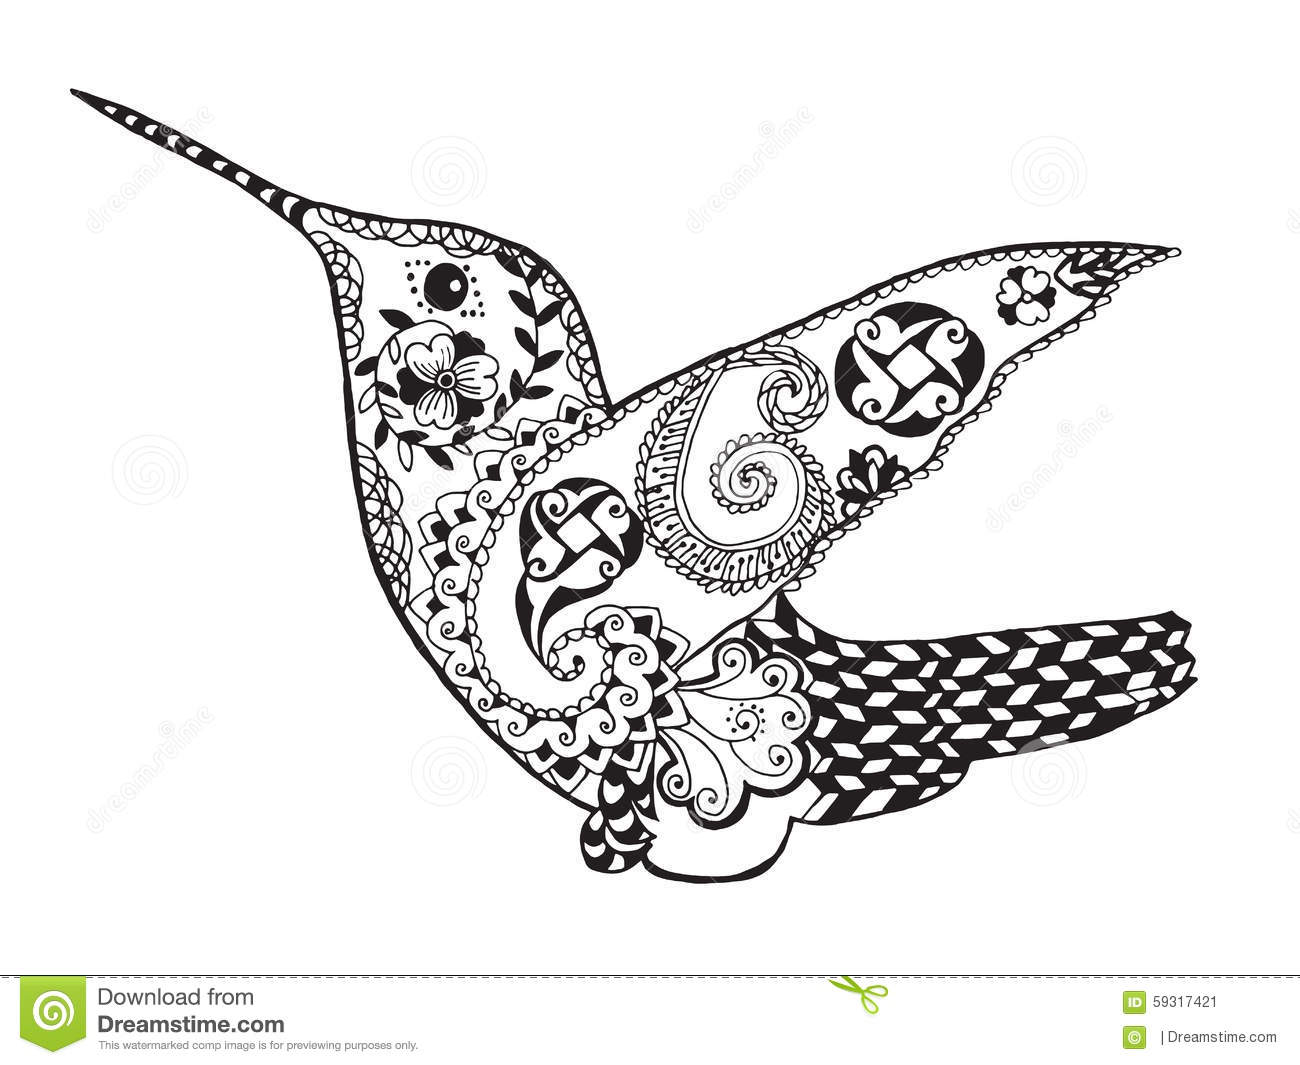 Zentangle Stylized Hummingbird Sketch For Tattoo Or T